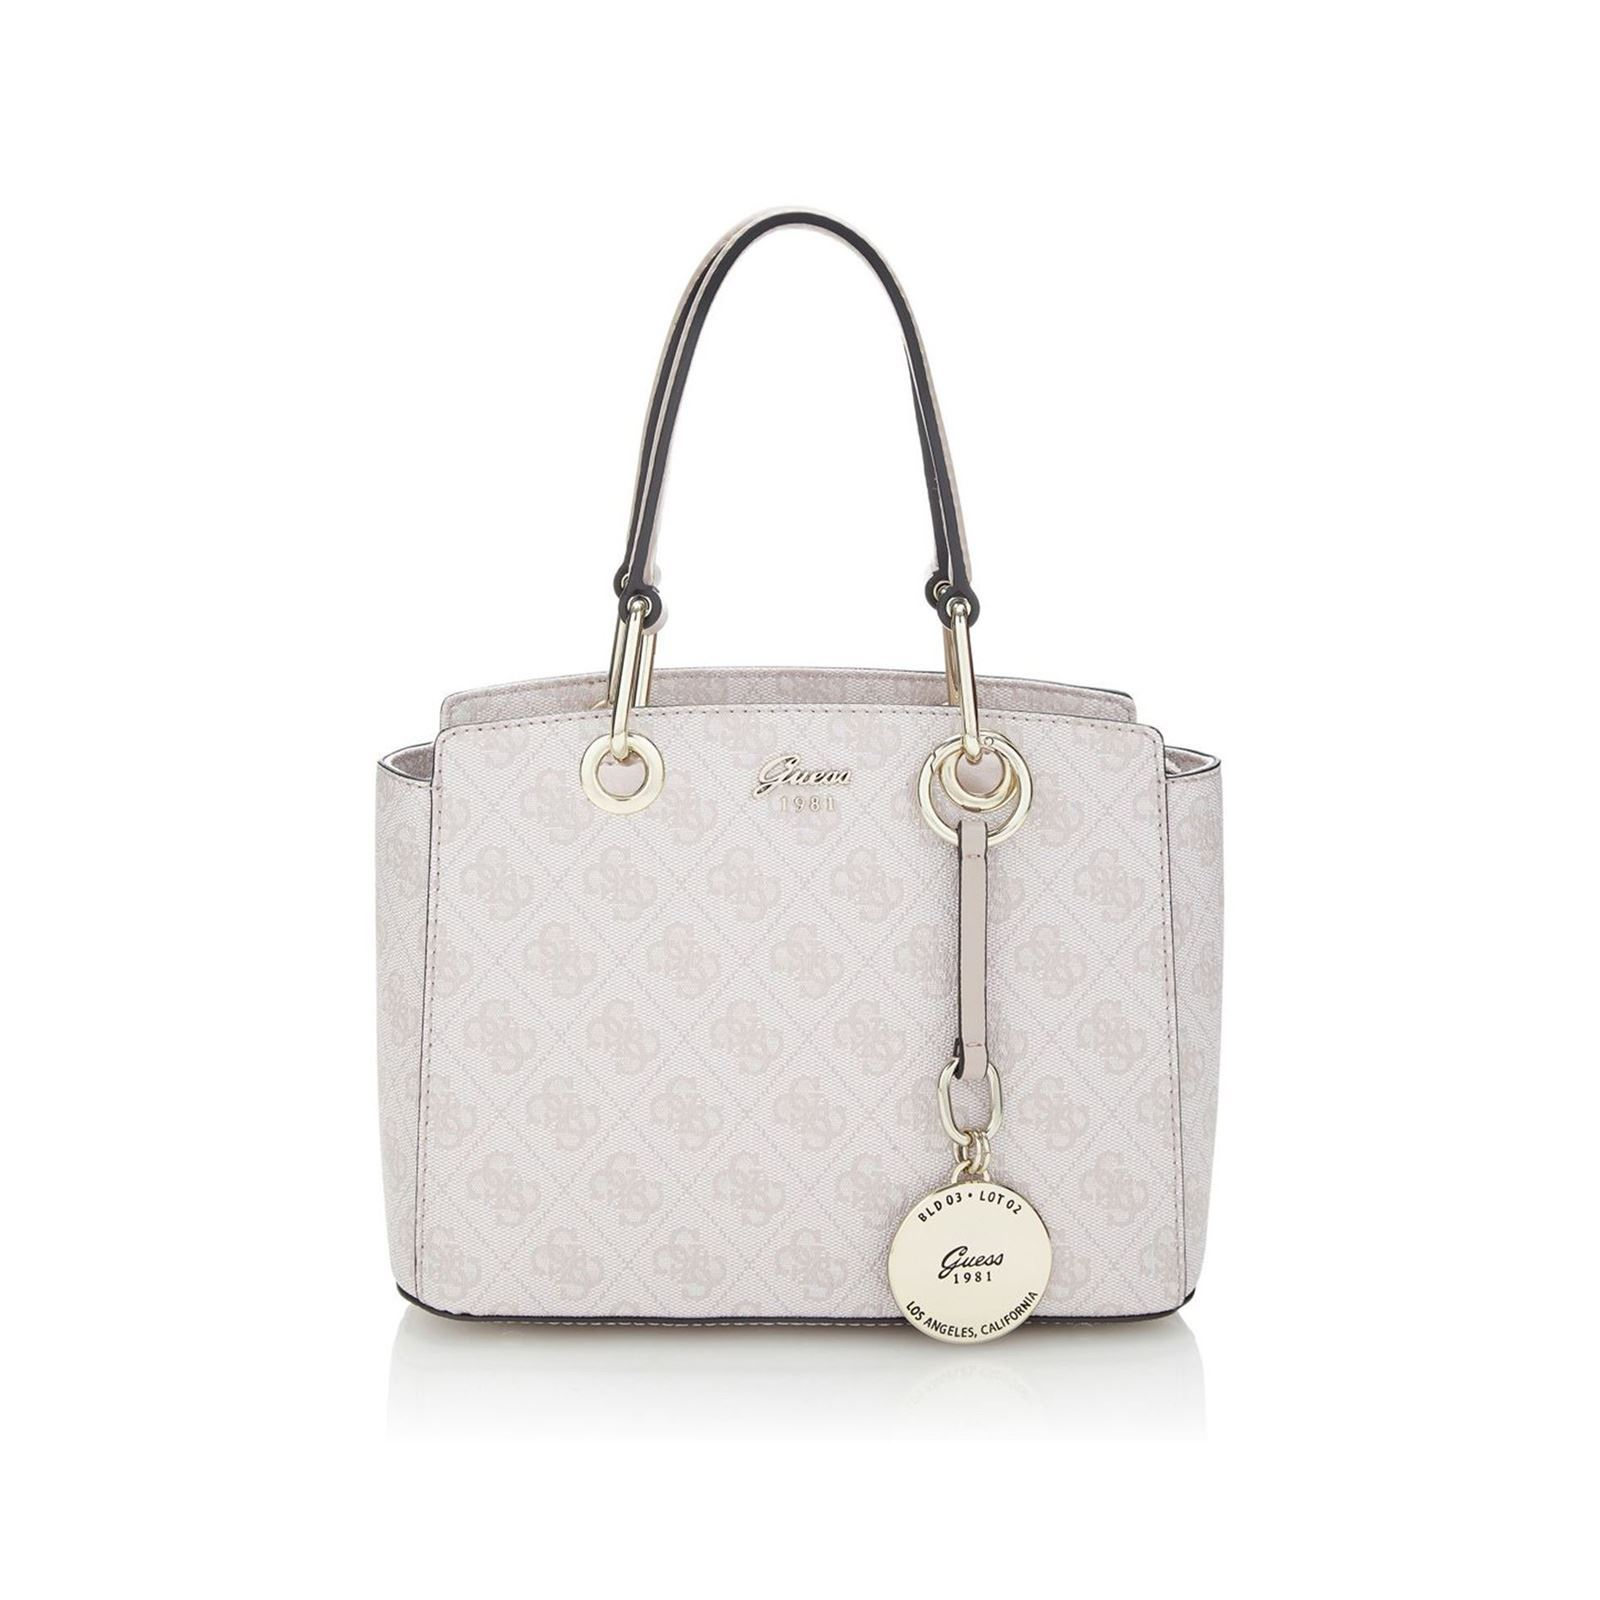 Guess Sac à main JACQUI SATCHEL Guess solde